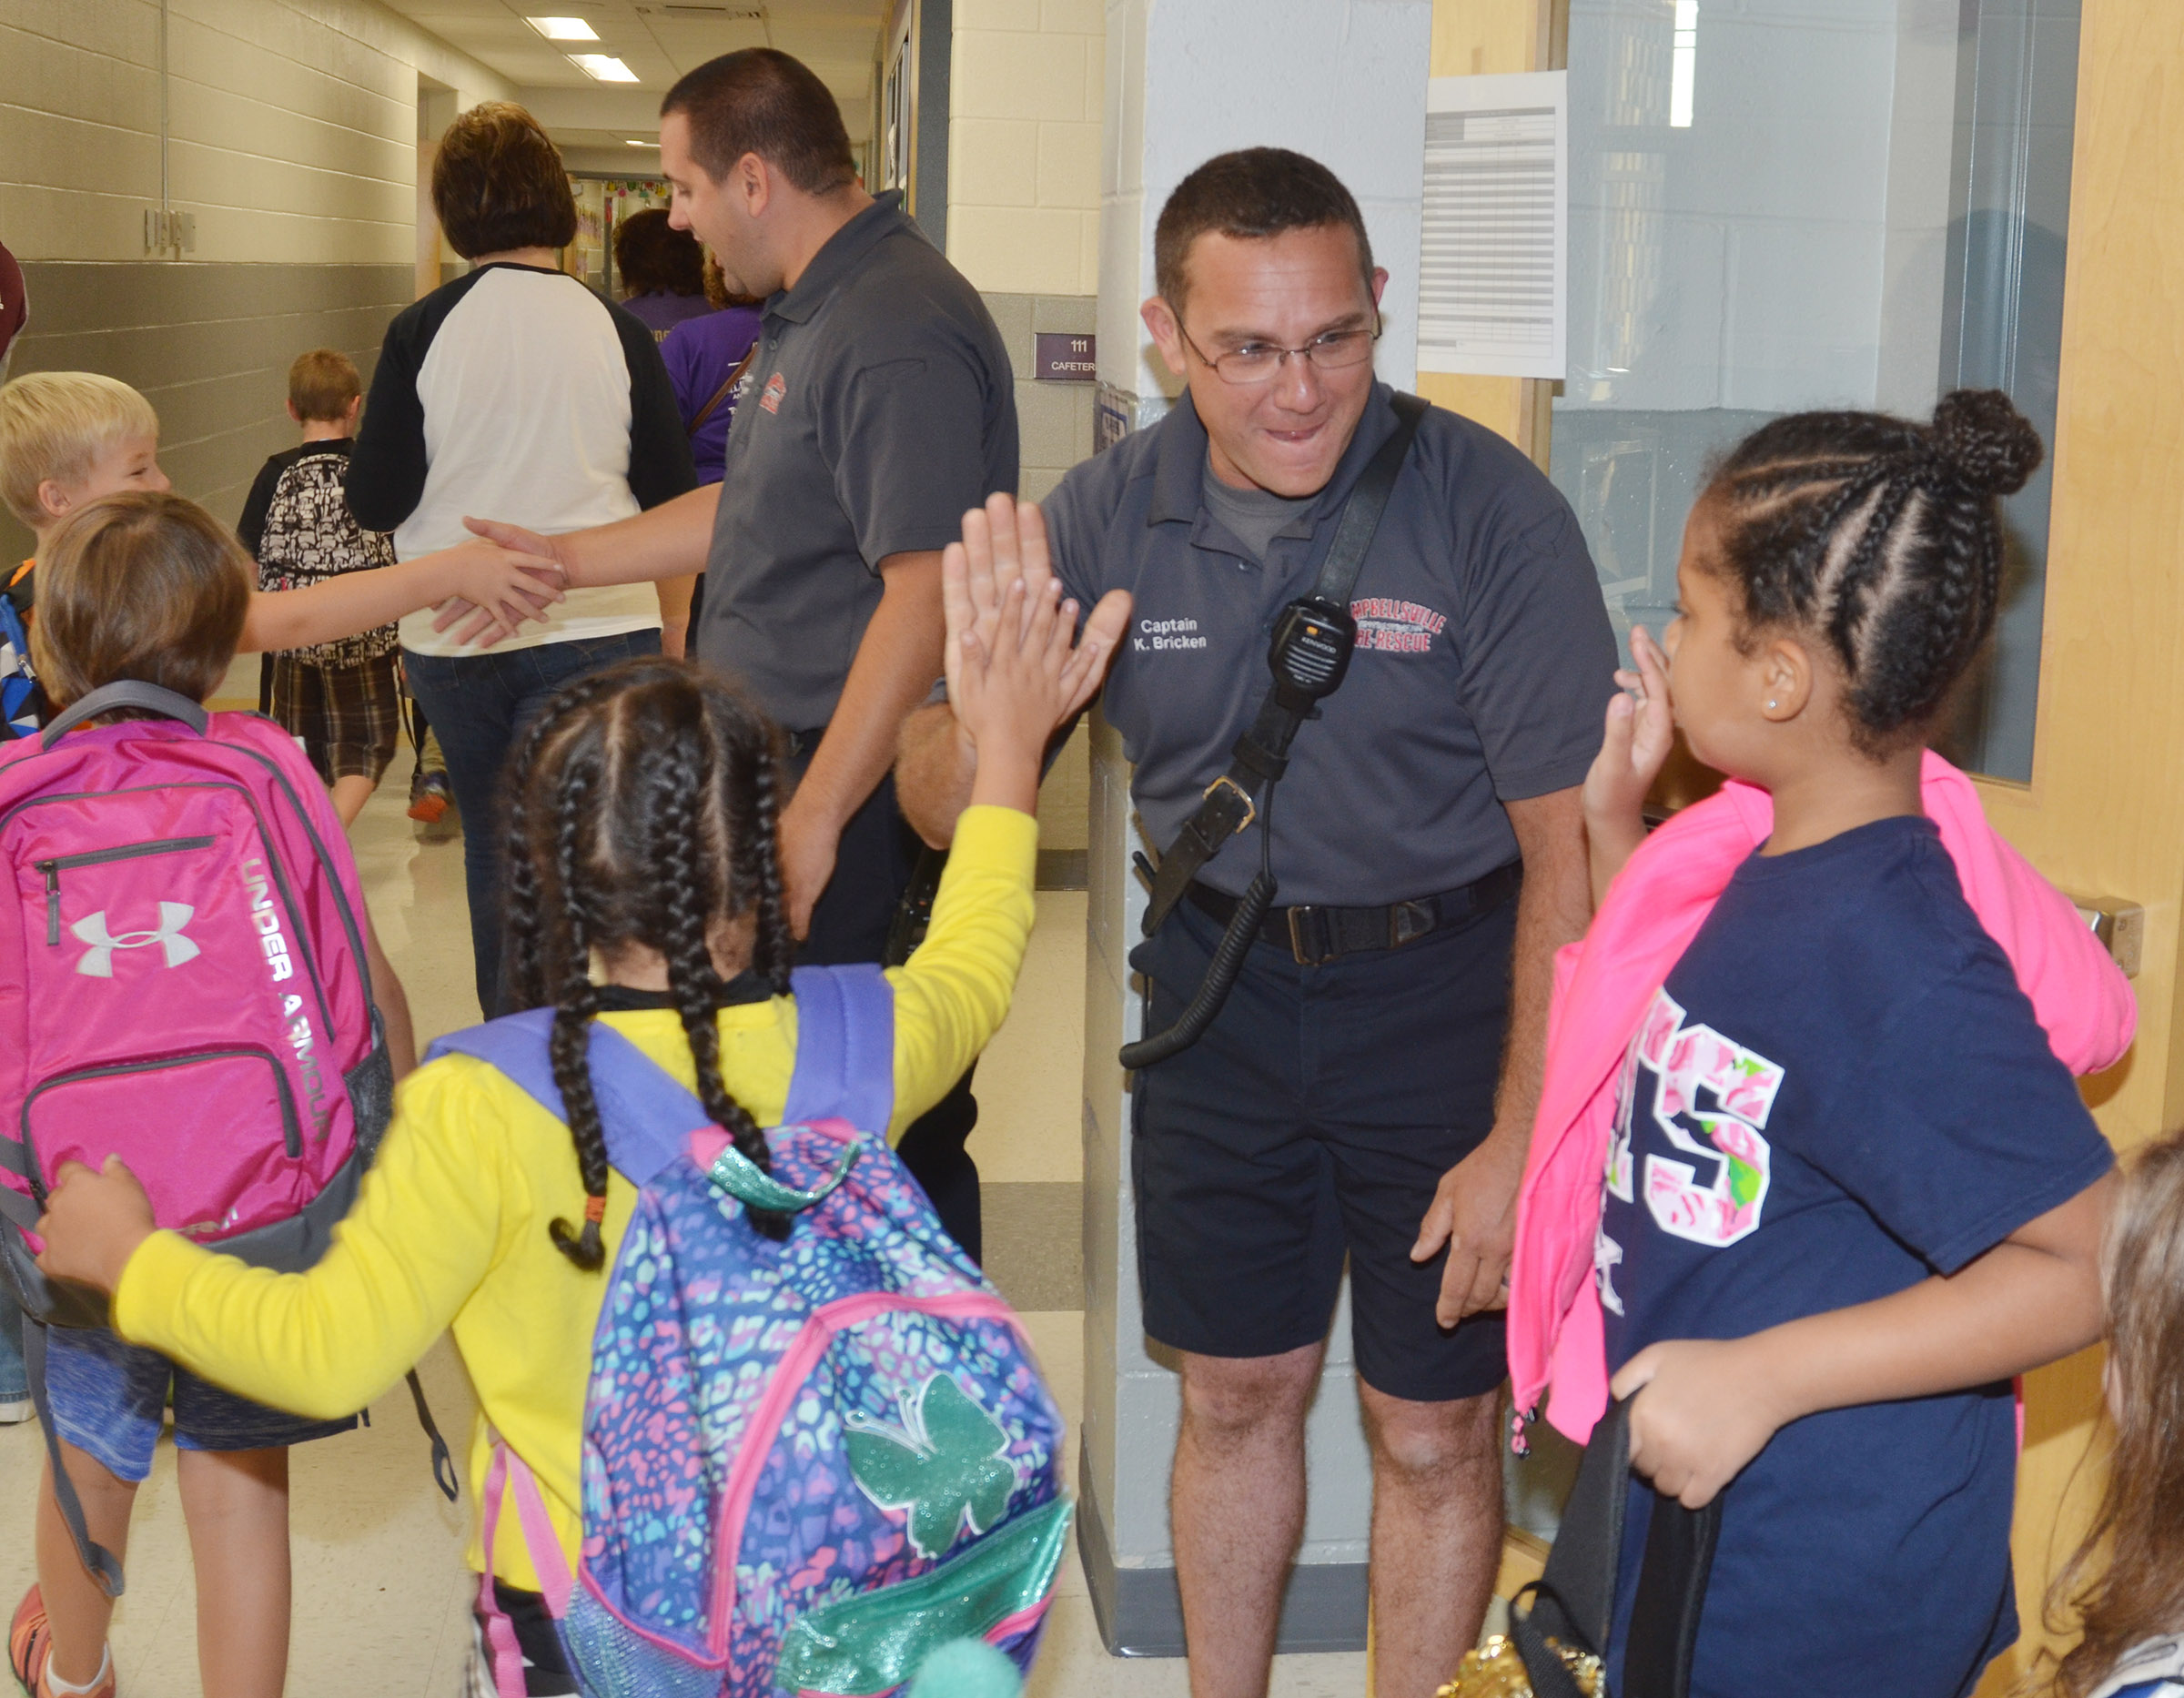 Campbellsville Fire & Rescue Captain Keith Bricken high fives CES students.